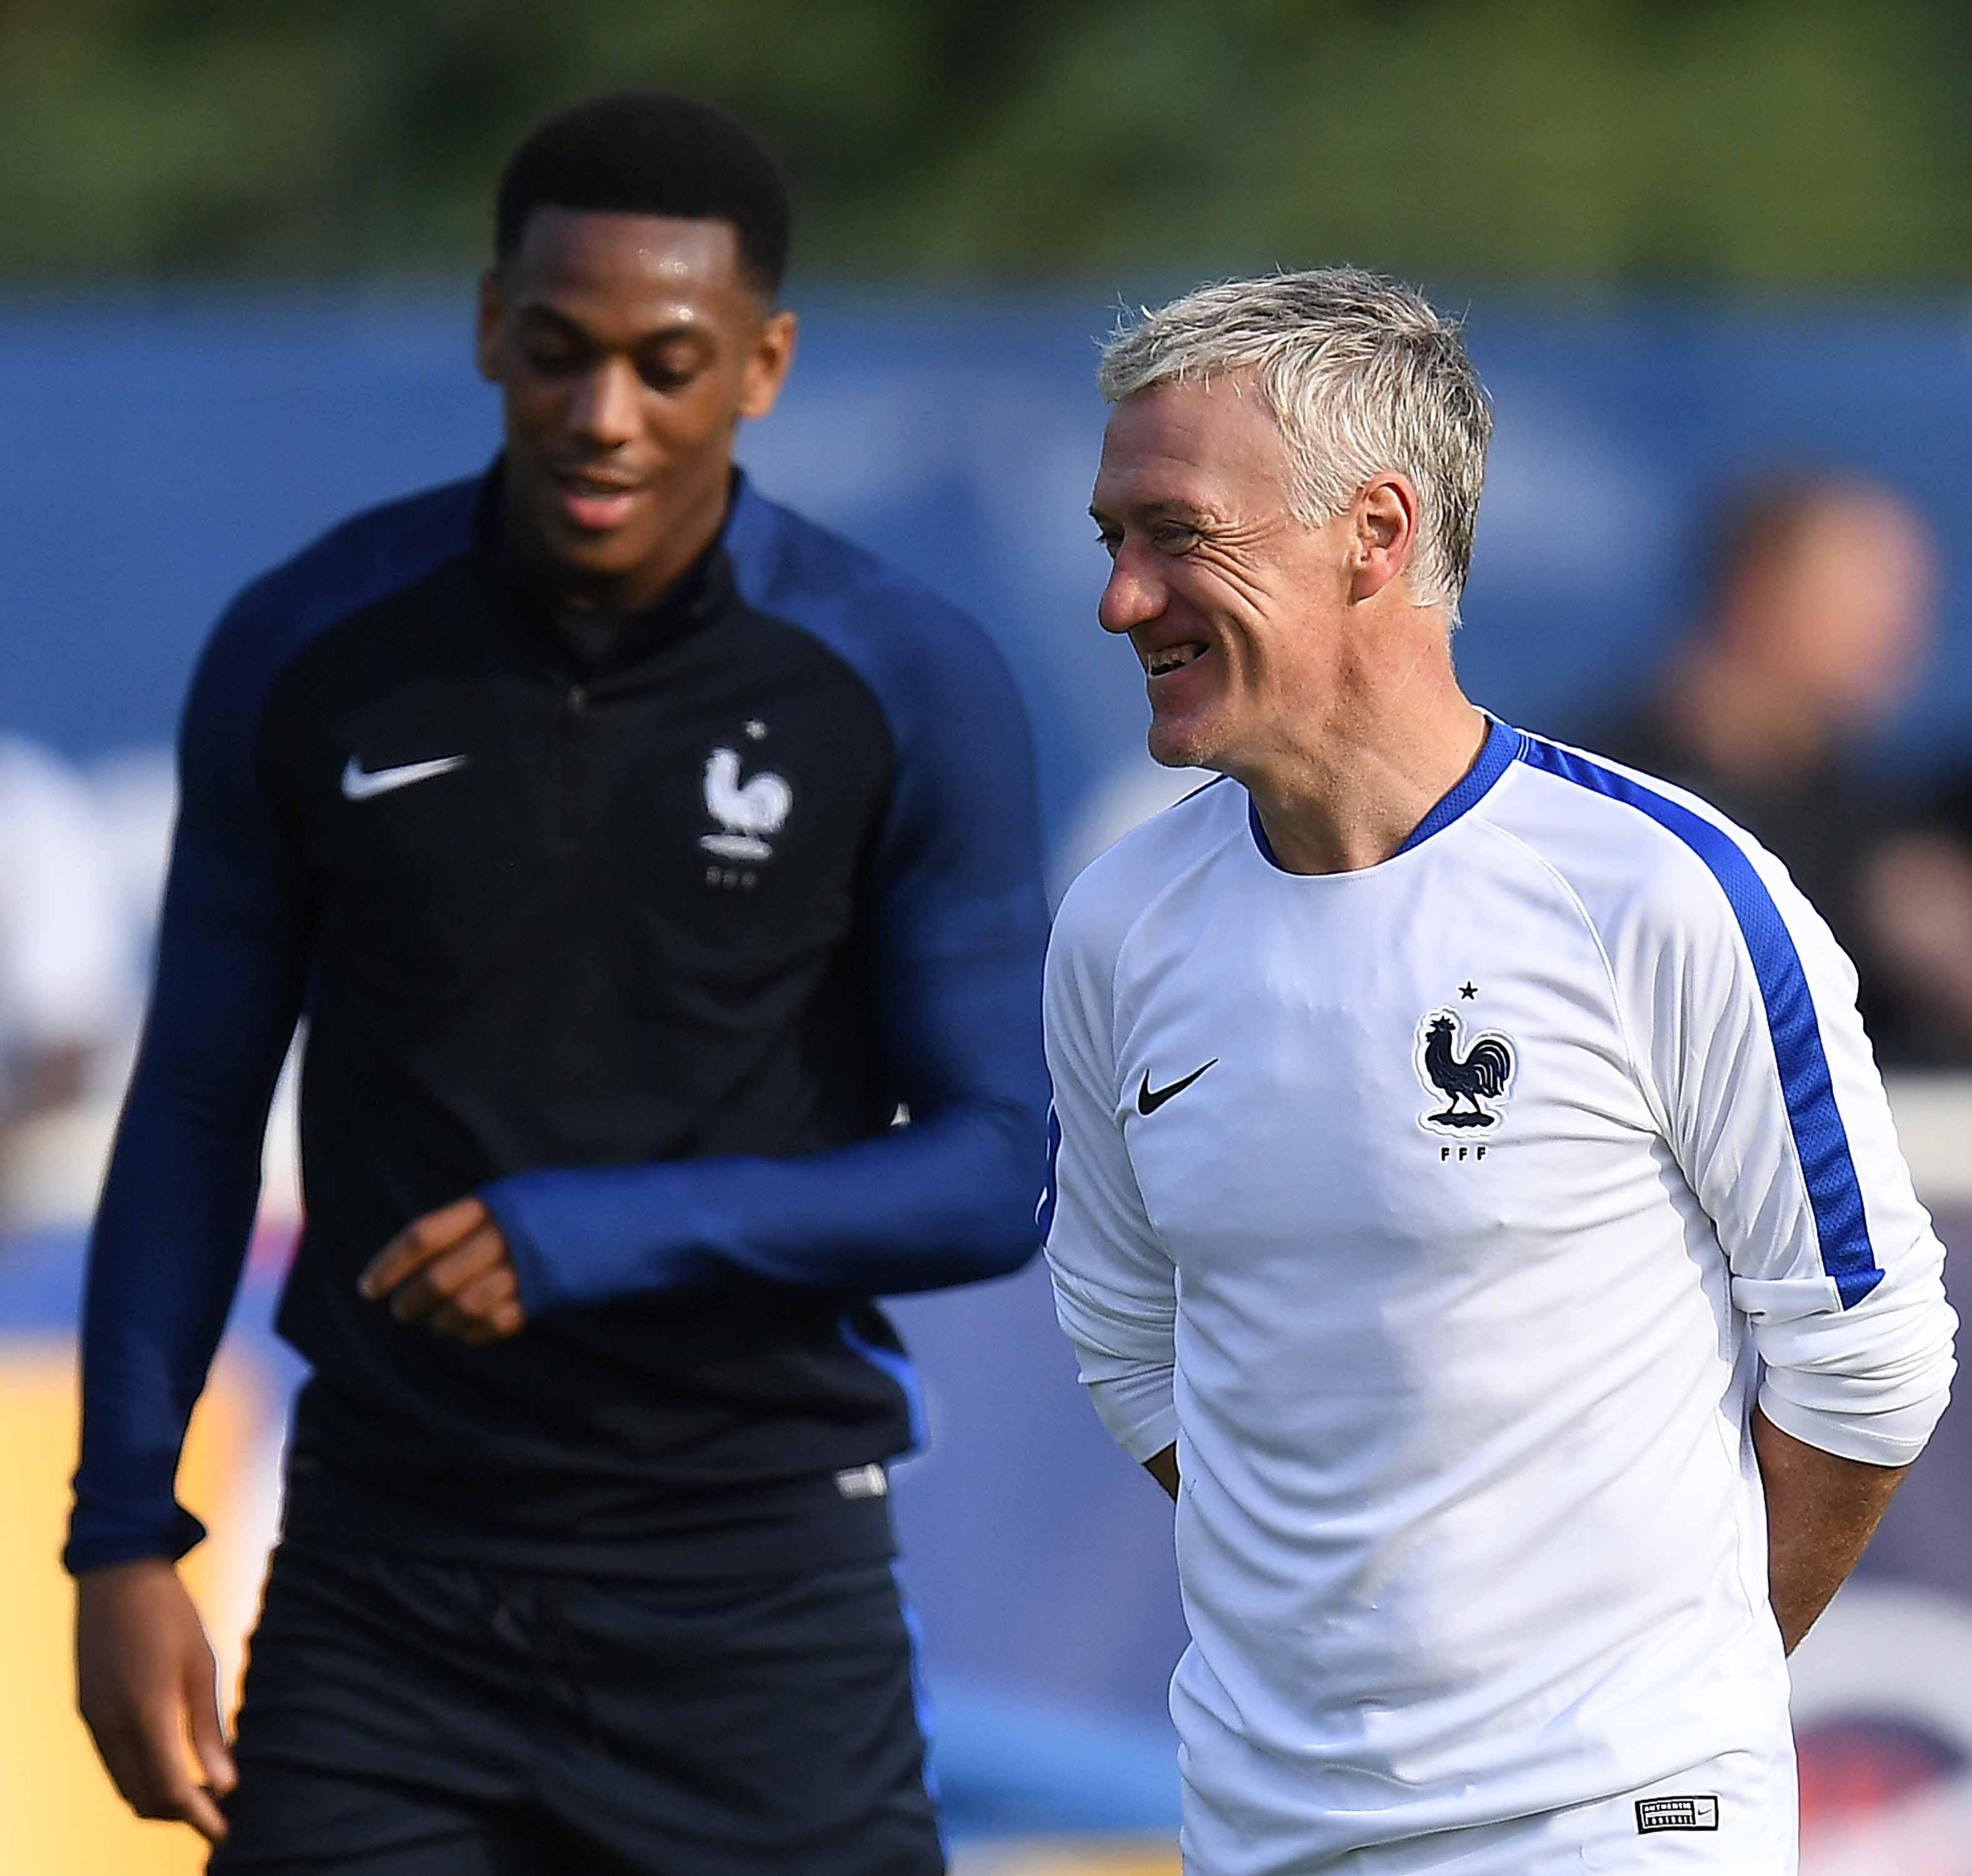 The youngster has failed to get into the recent France squad